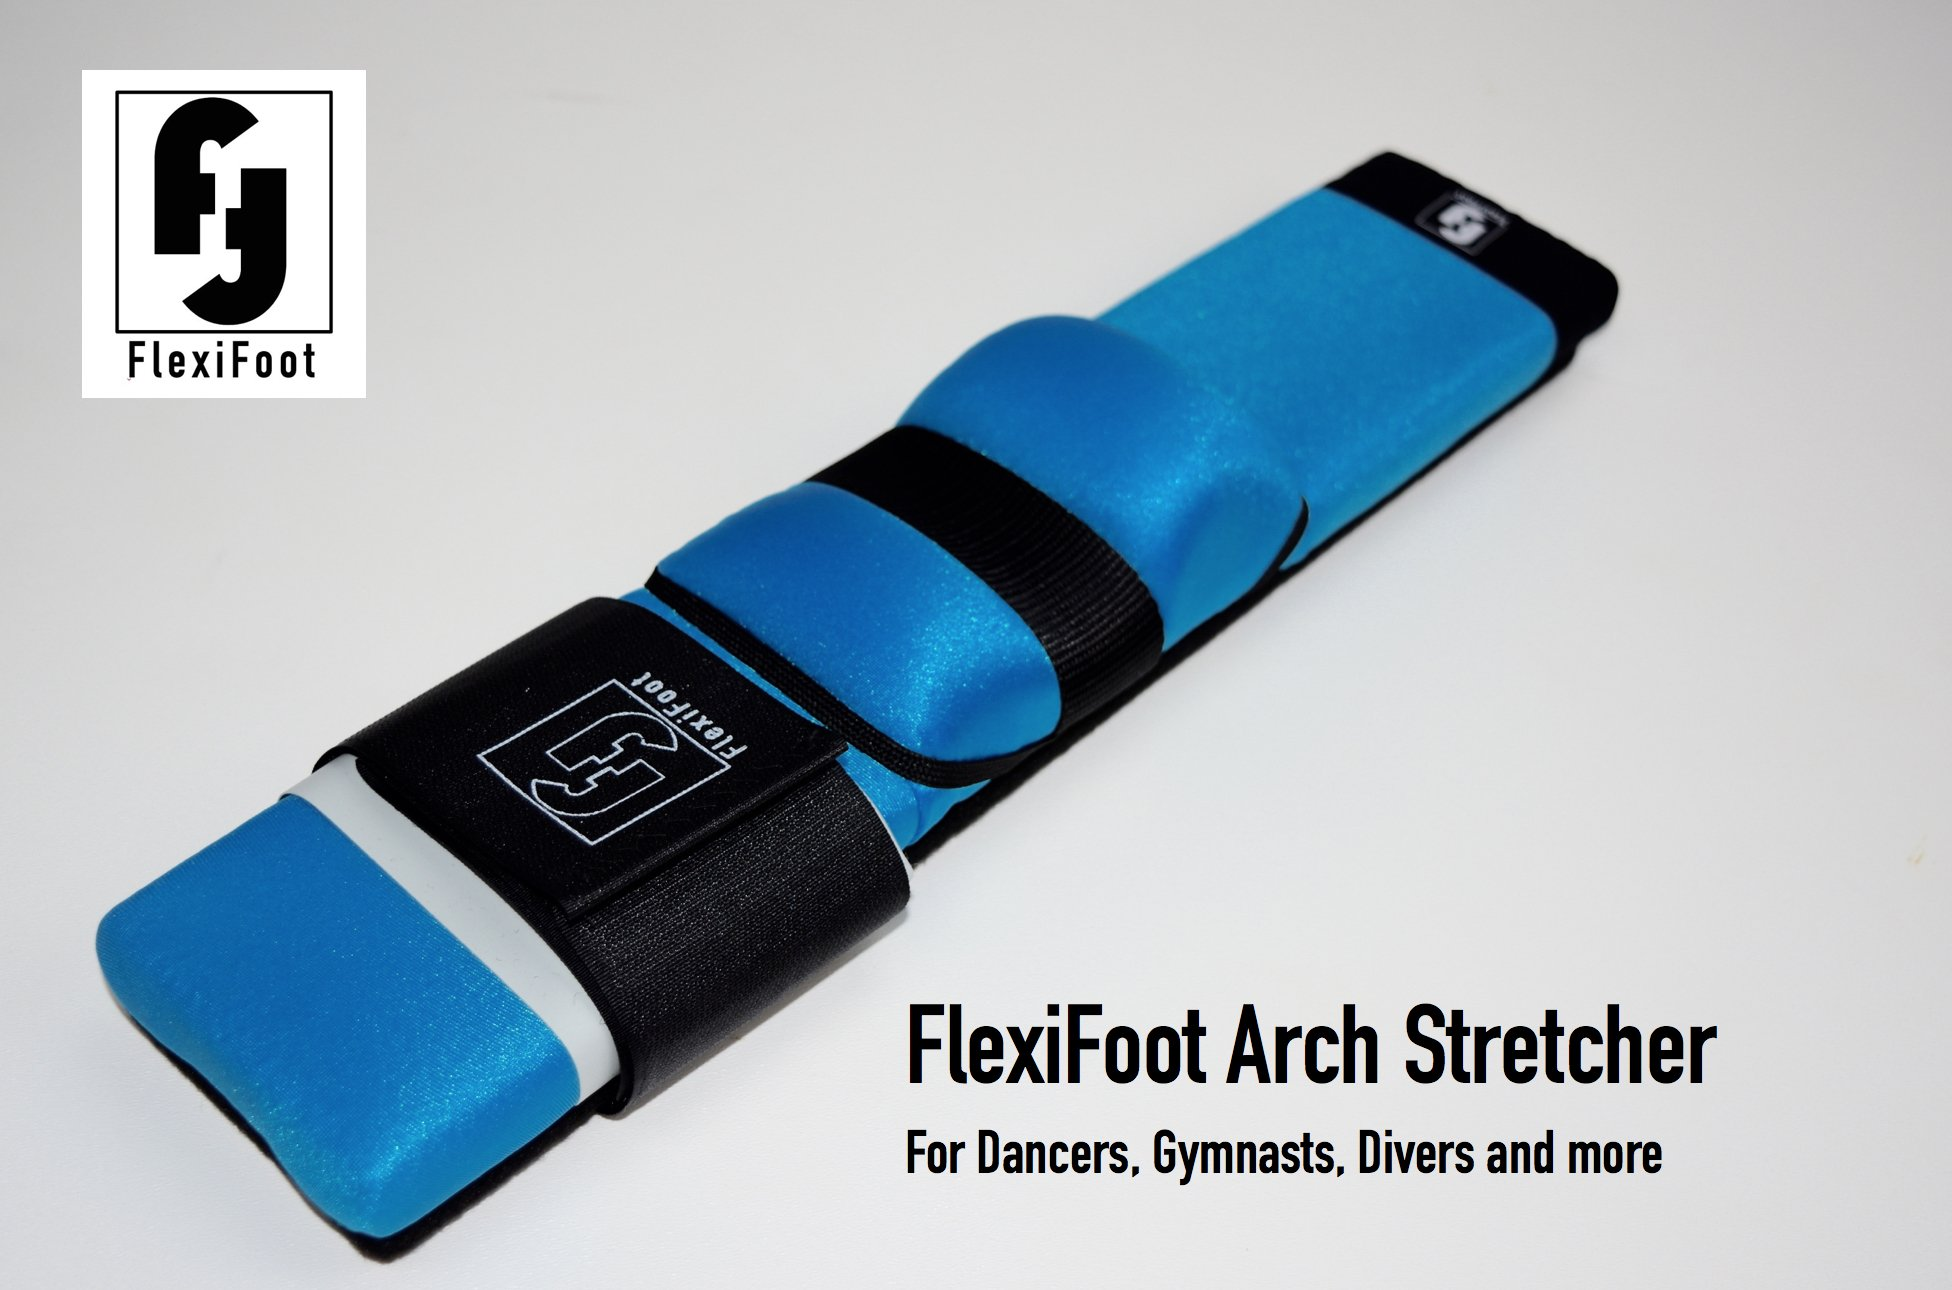 FlexiFoot Advanced Arch Stretcher